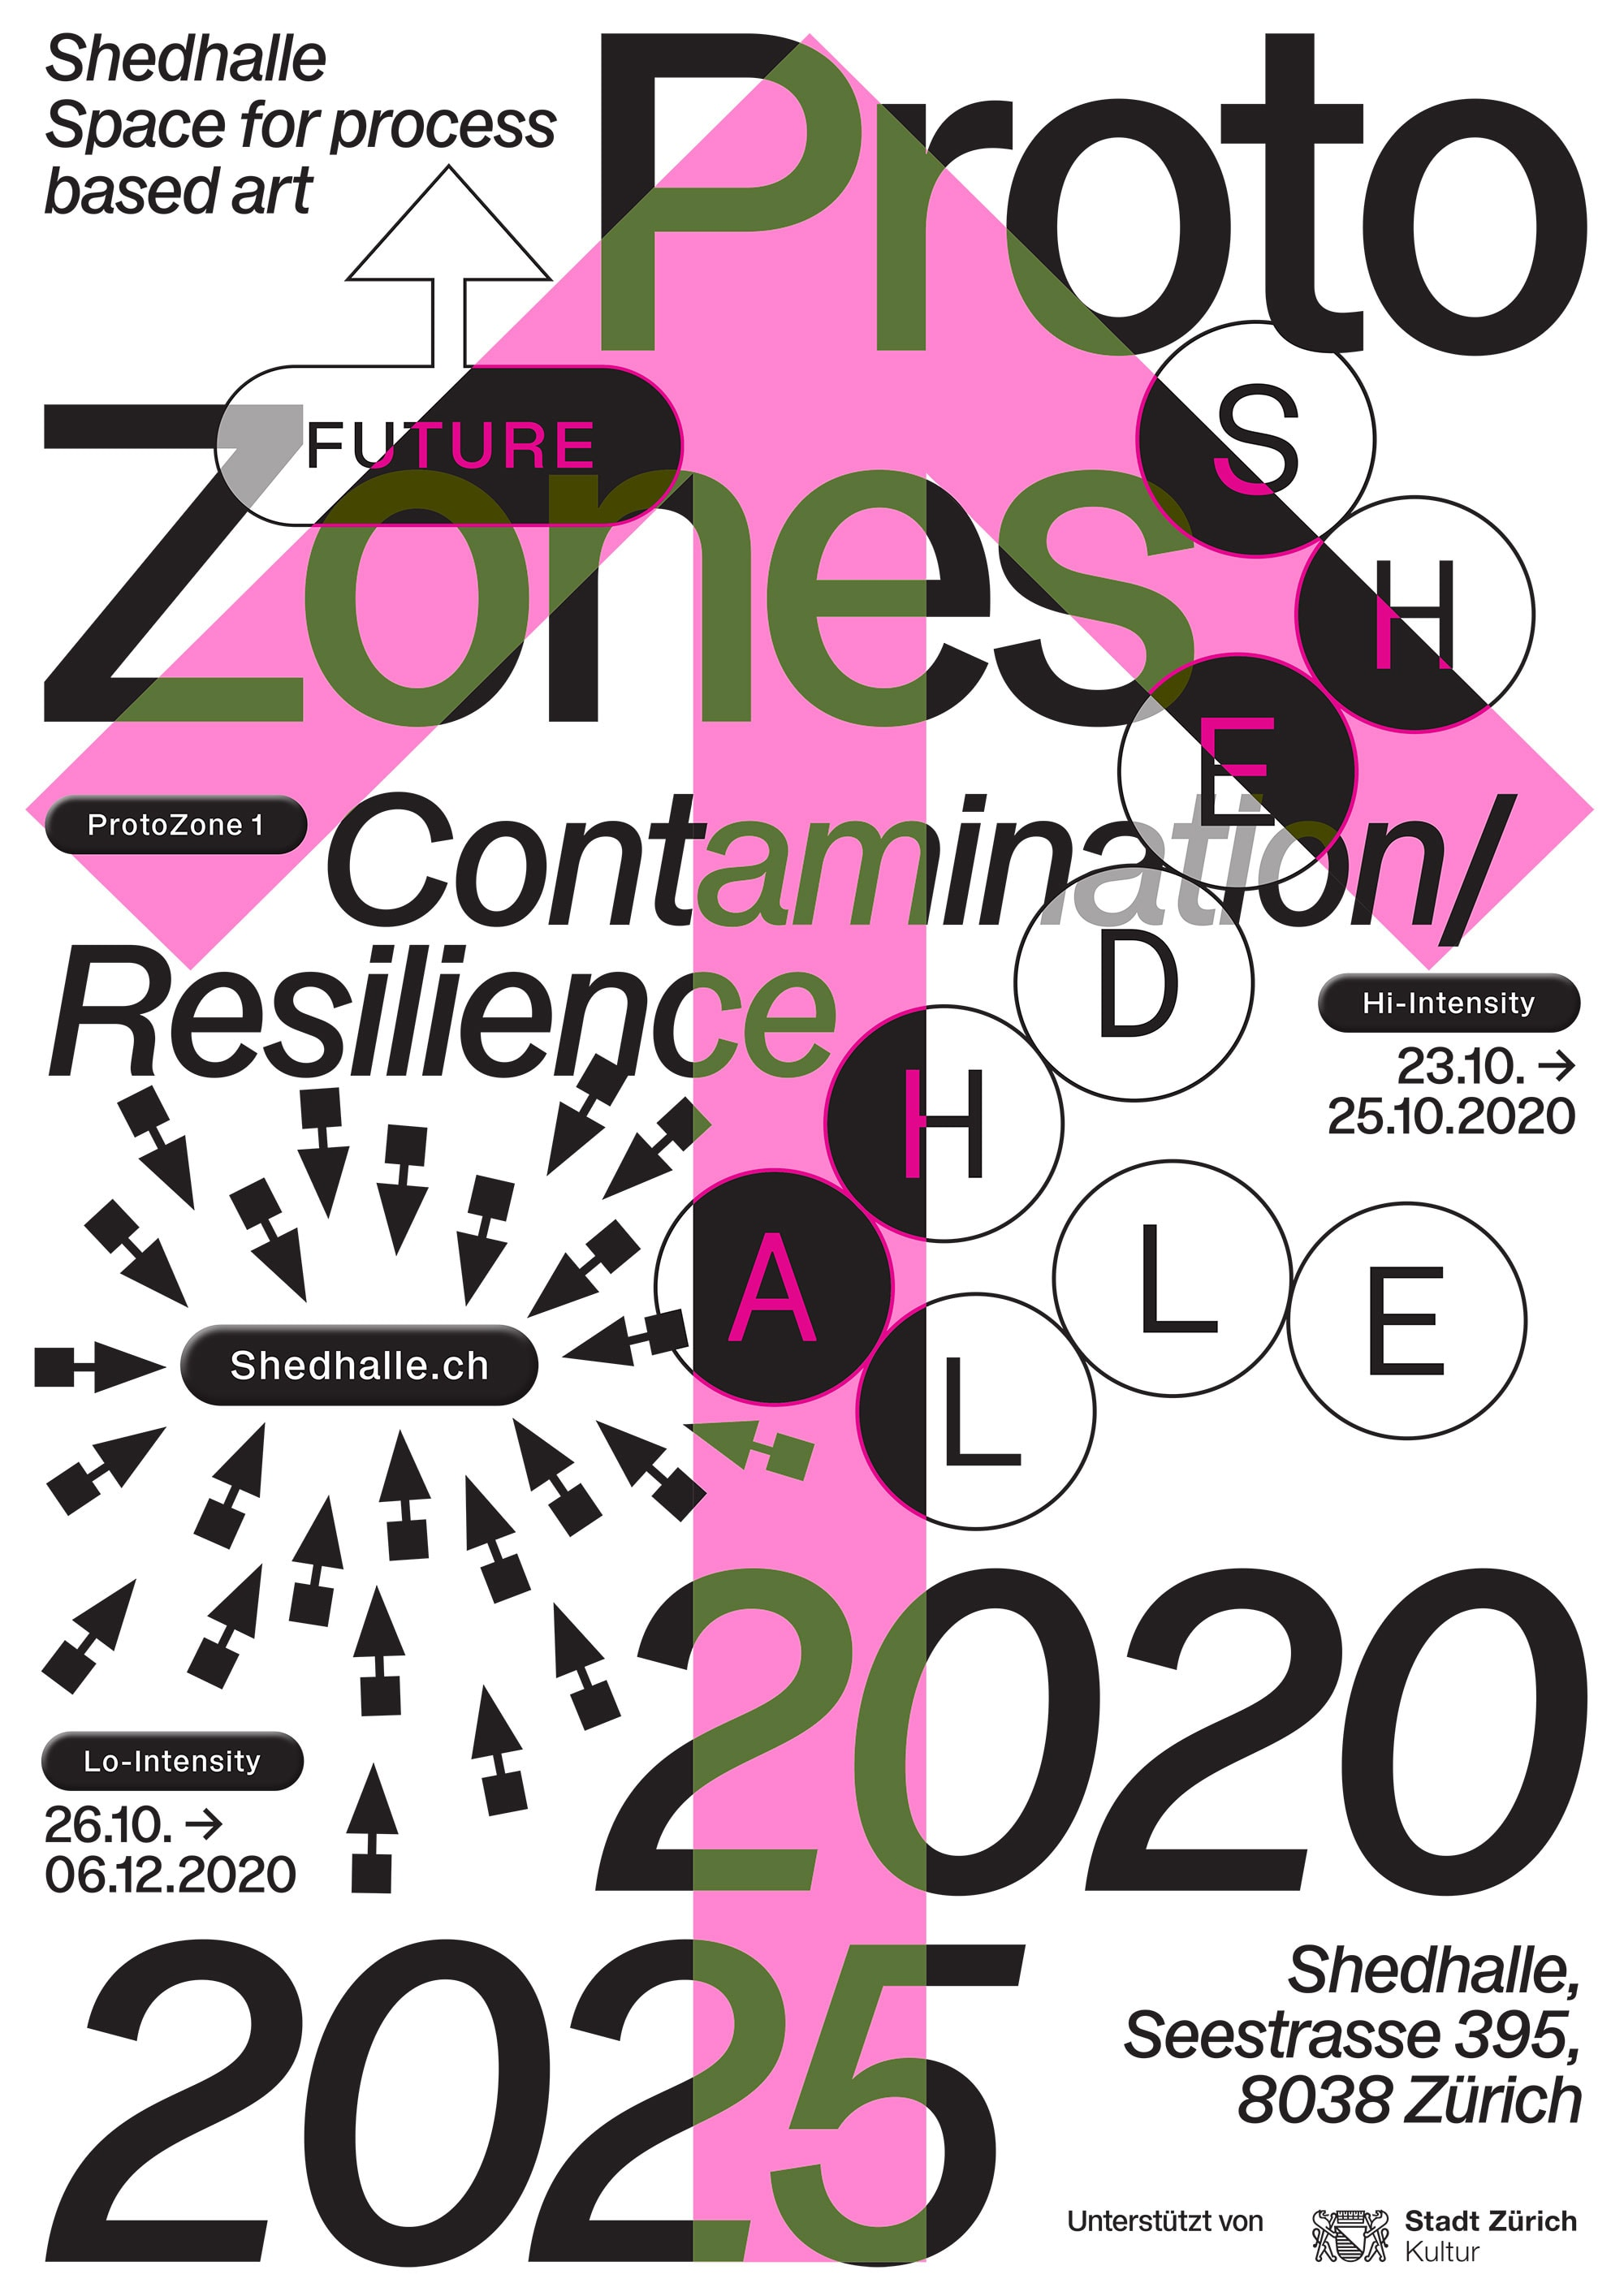 Shedhalle – Protozones 2020-2025 media conference